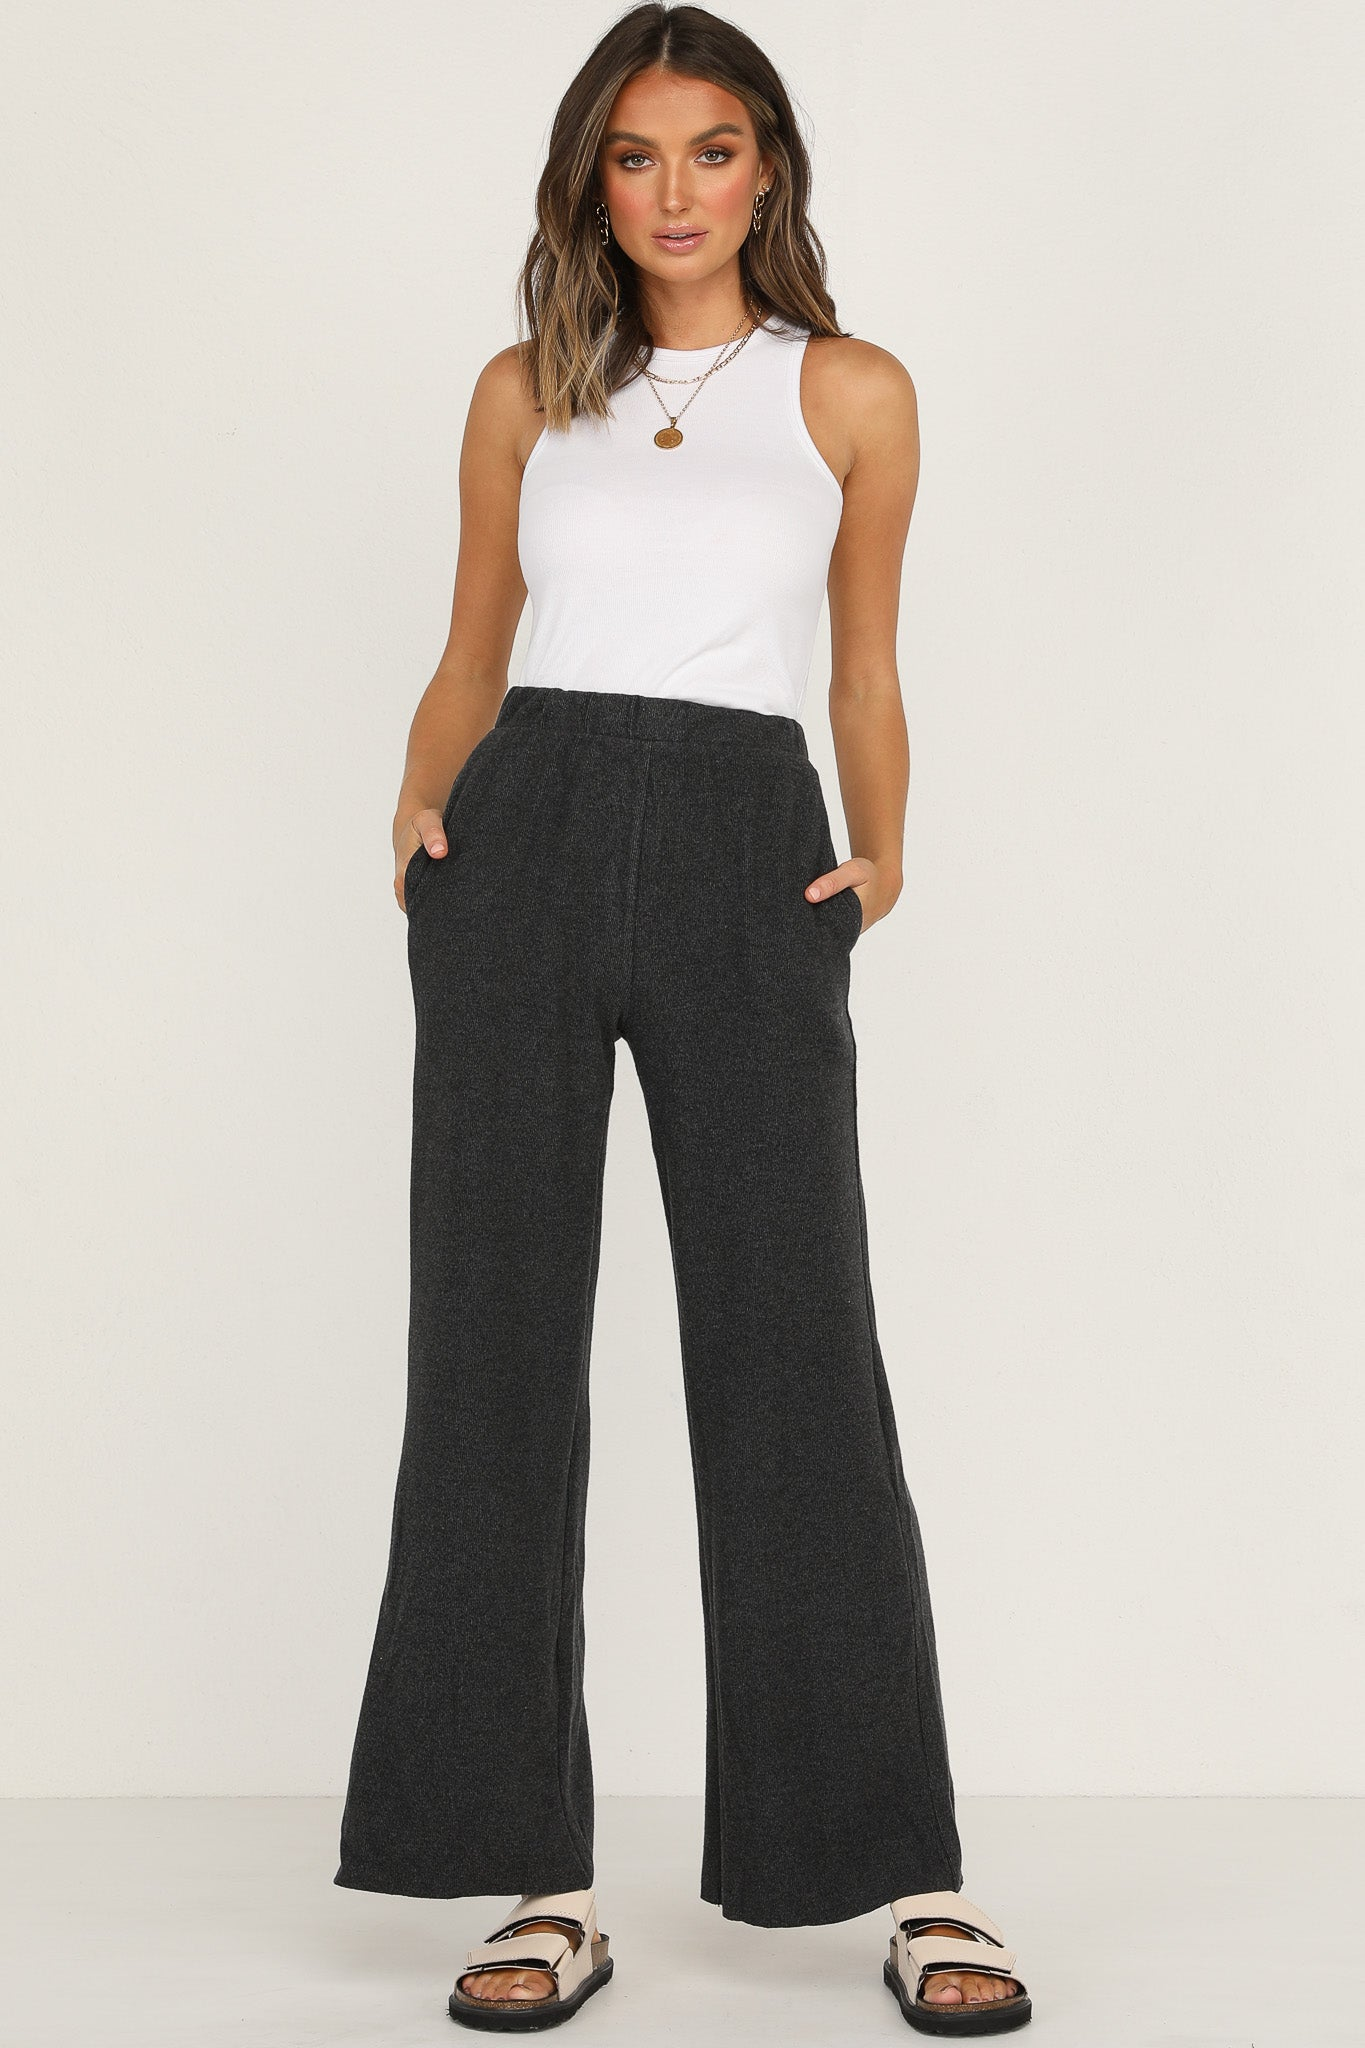 Me And You Knit Pants (Charcoal)